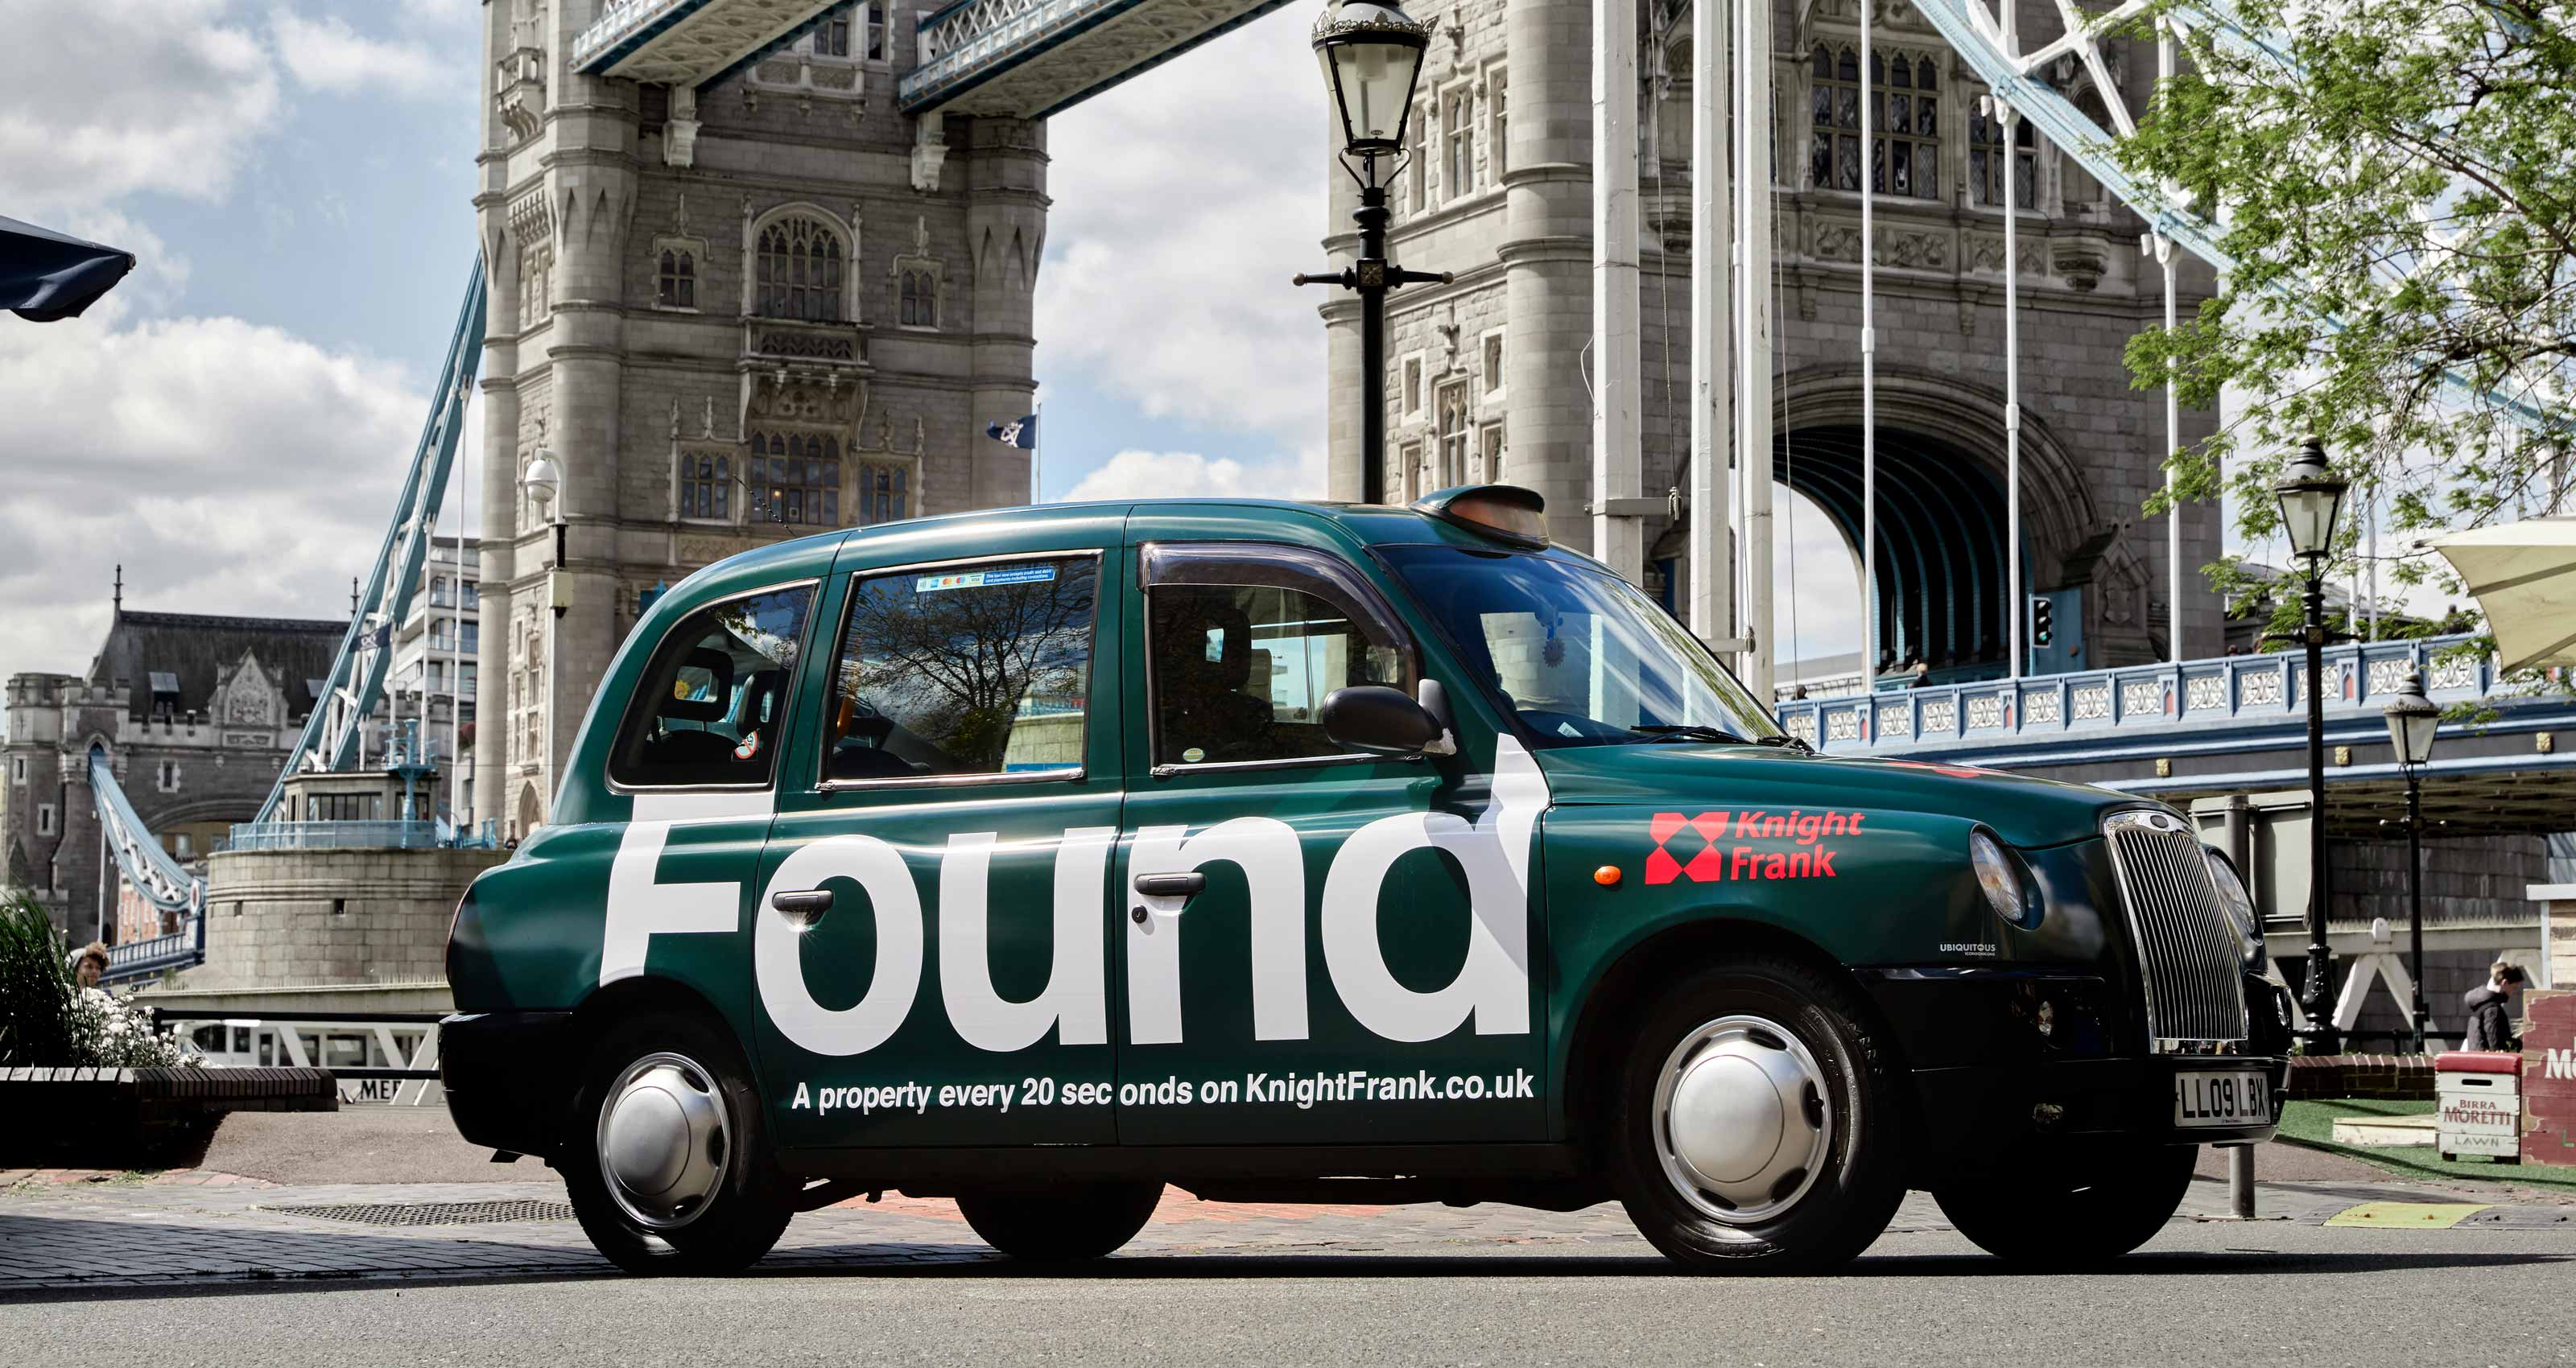 Knight Frank Taxi Advertising by Spinach Branding Agency in London, 2017